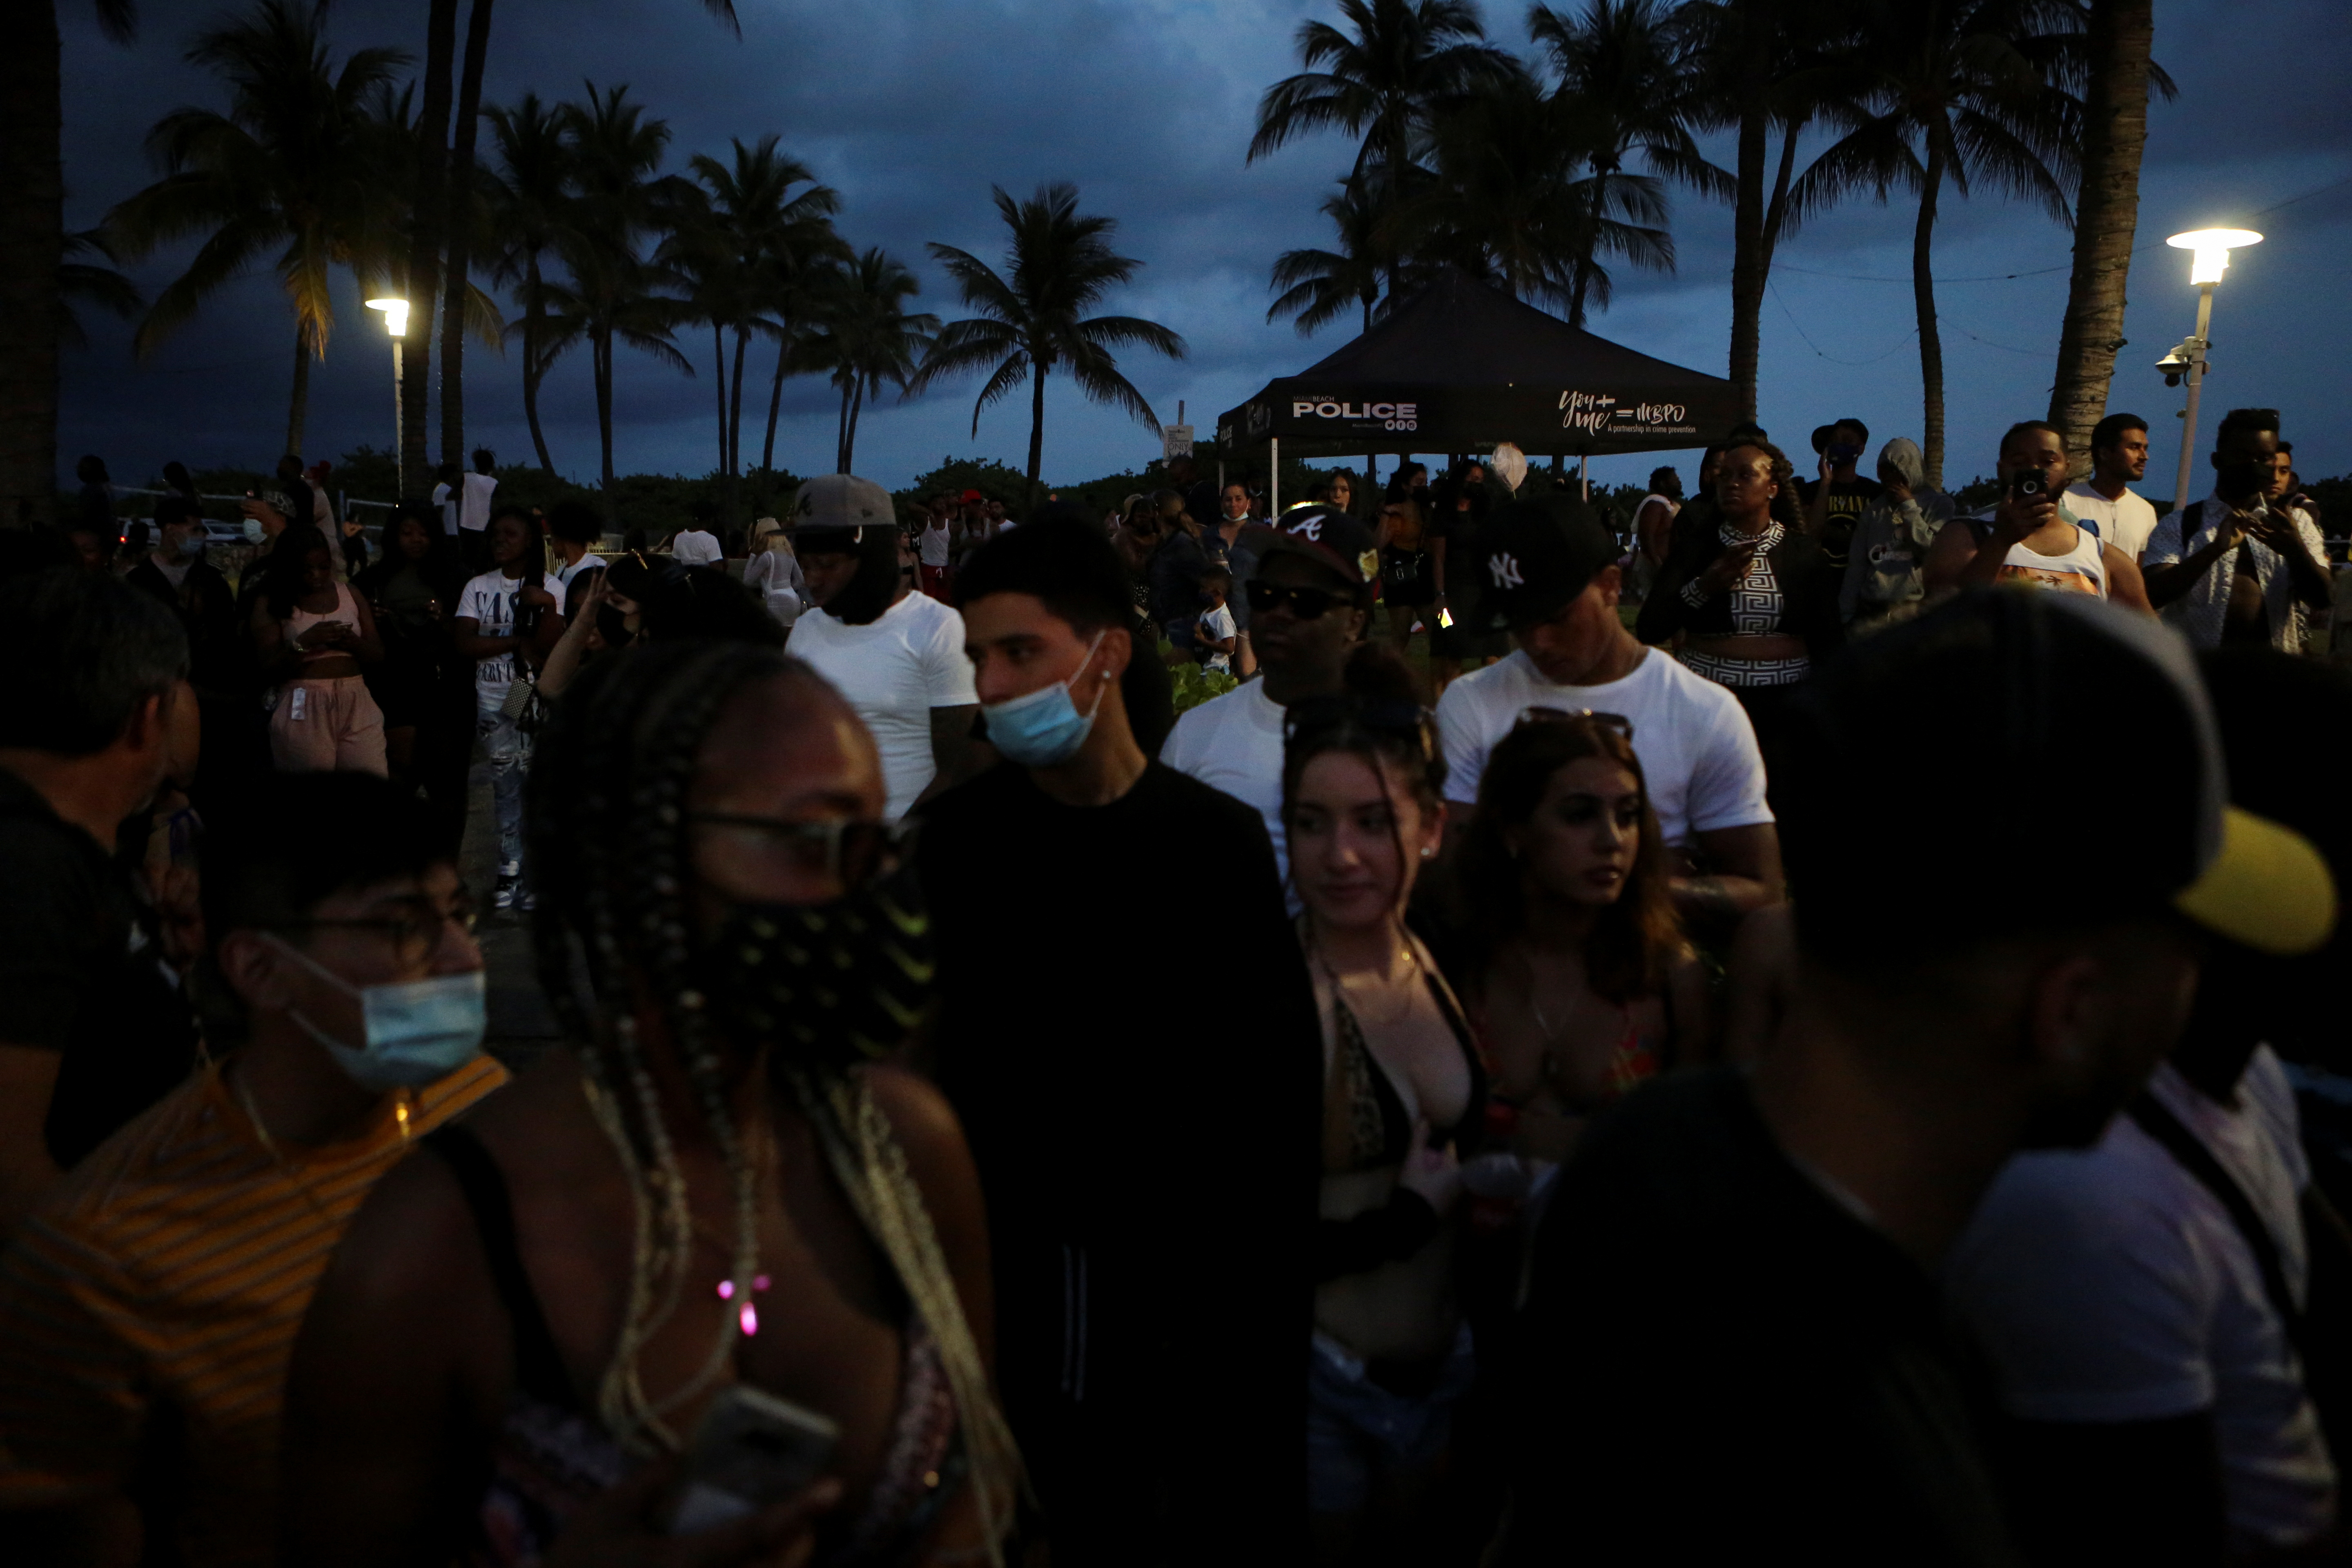 People walk along Ocean Drive during spring break festivities ahead of an 8pm curfew imposed by local authorities, amid the coronavirus disease (COVID-19) outbreak in Miami Beach, Florida, U.S., March 20, 2021. REUTERS/Marco Bello